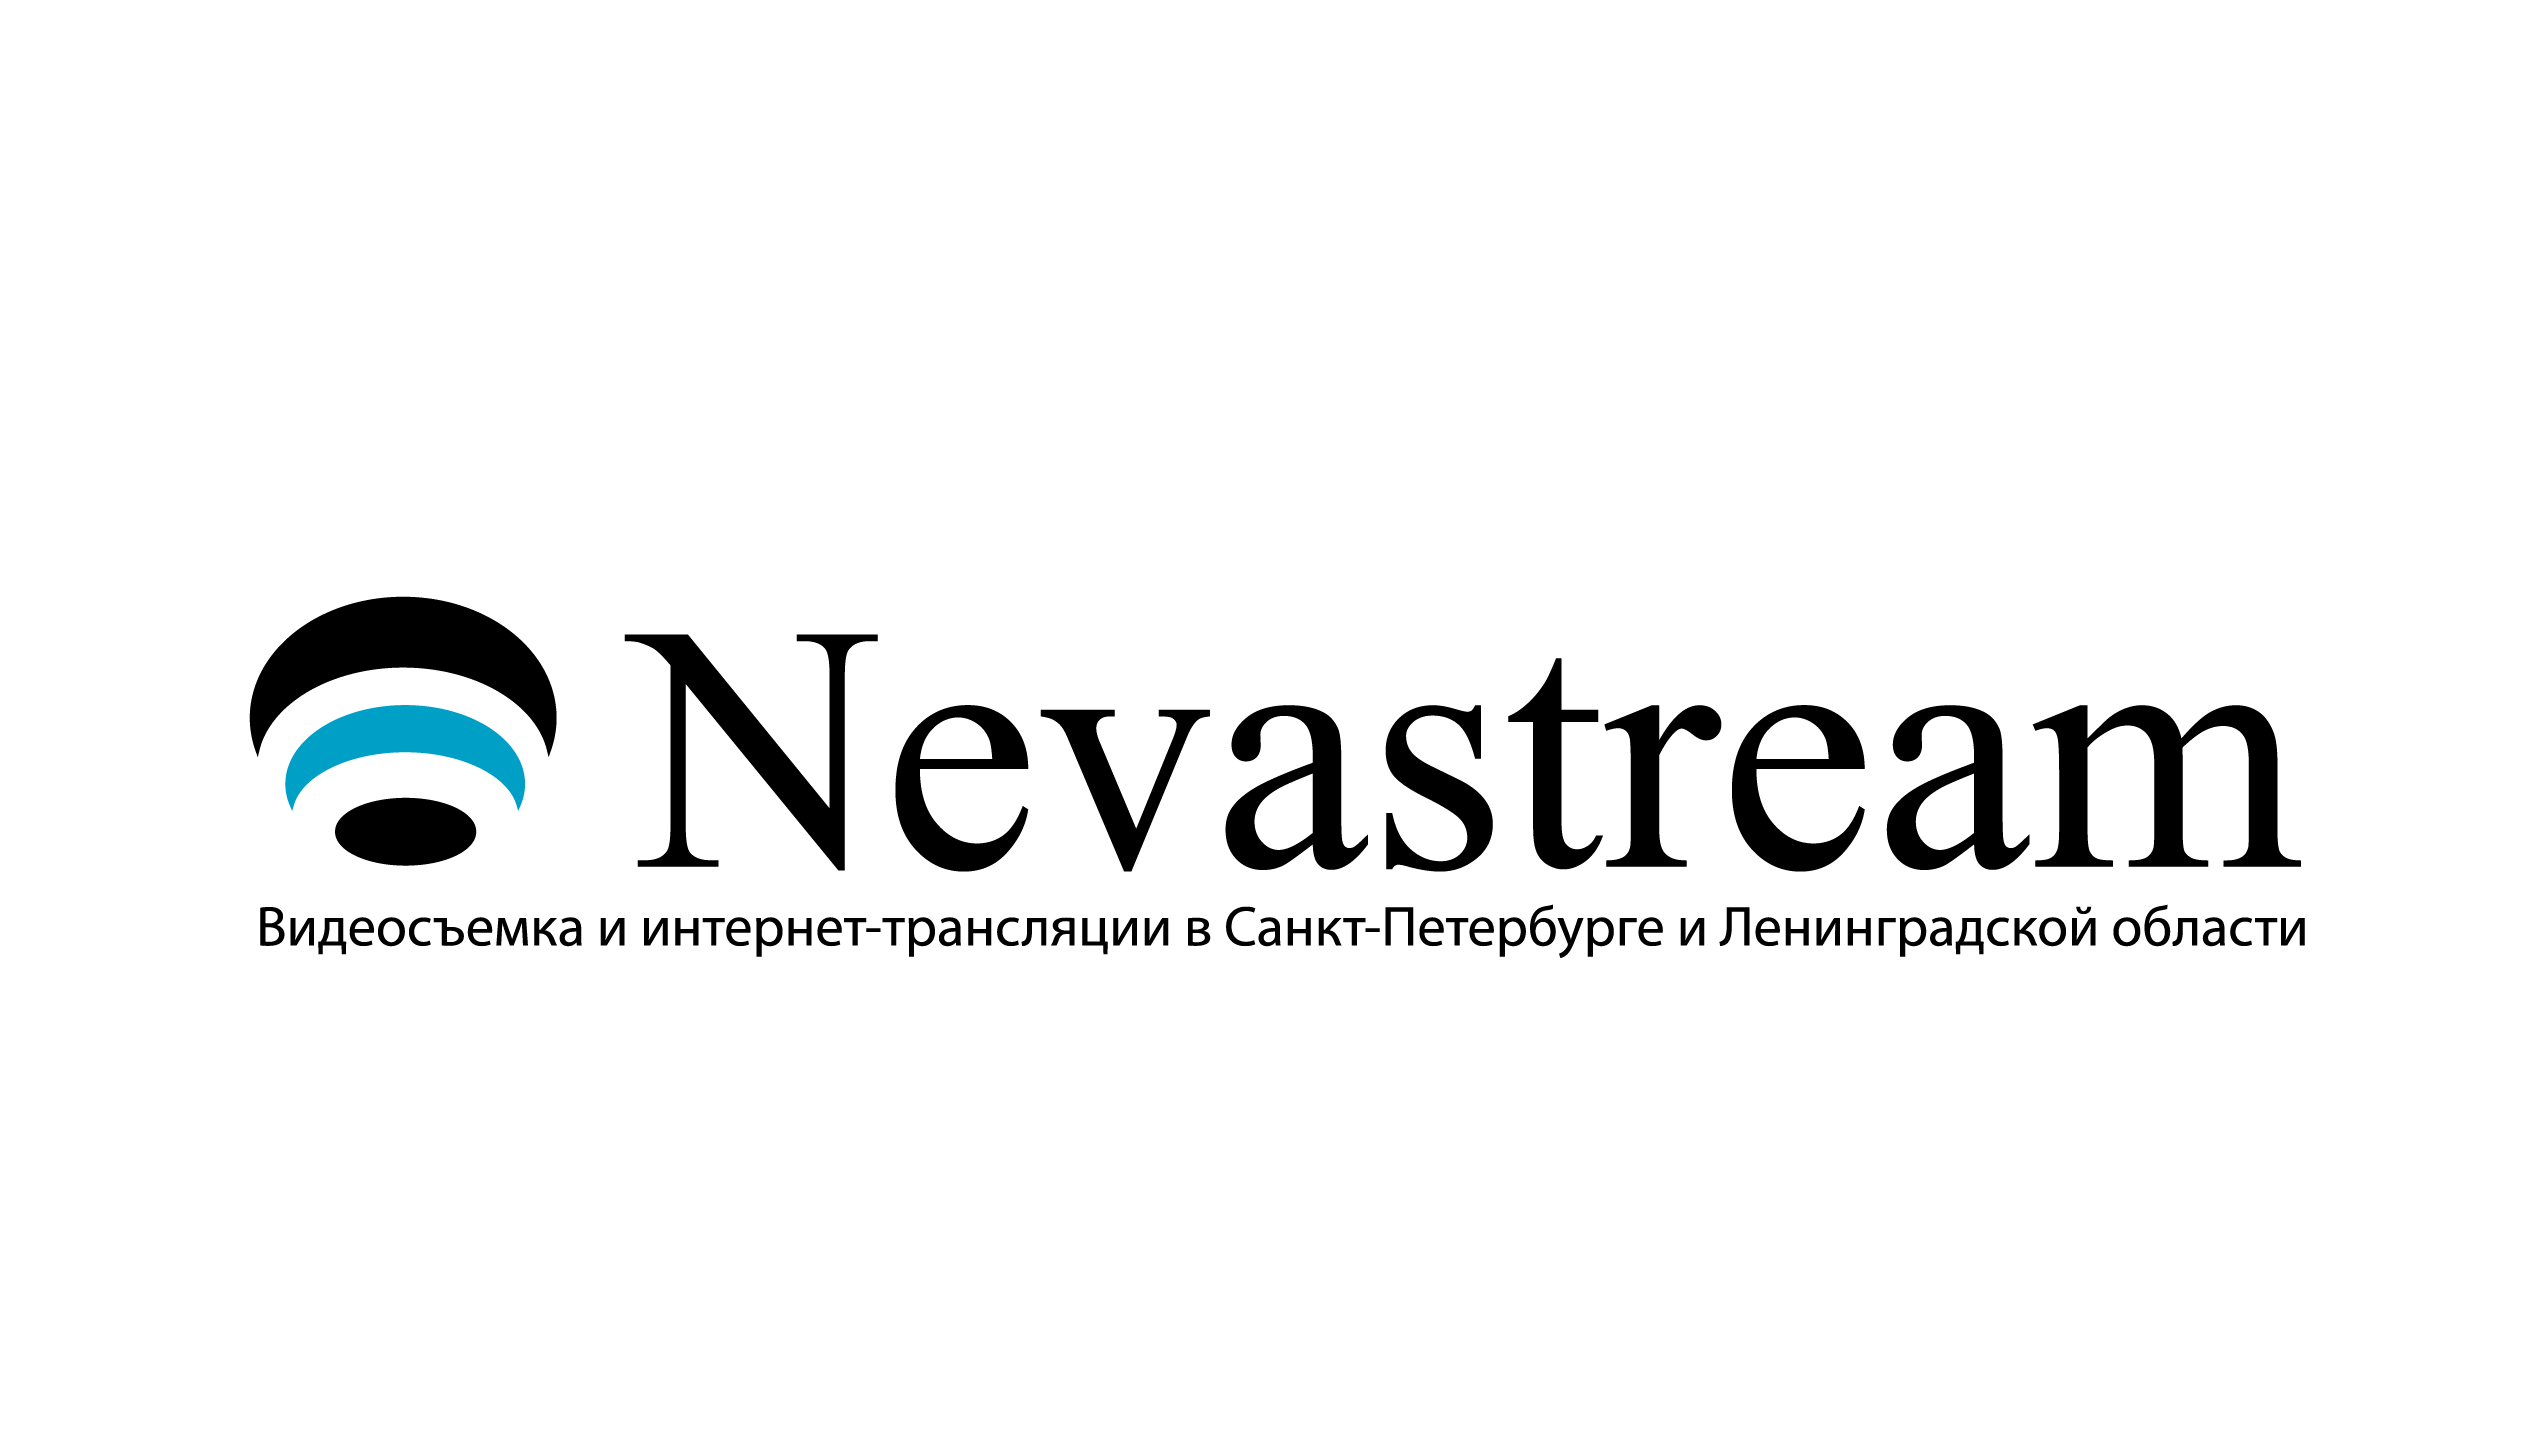 nevastream_logo-01